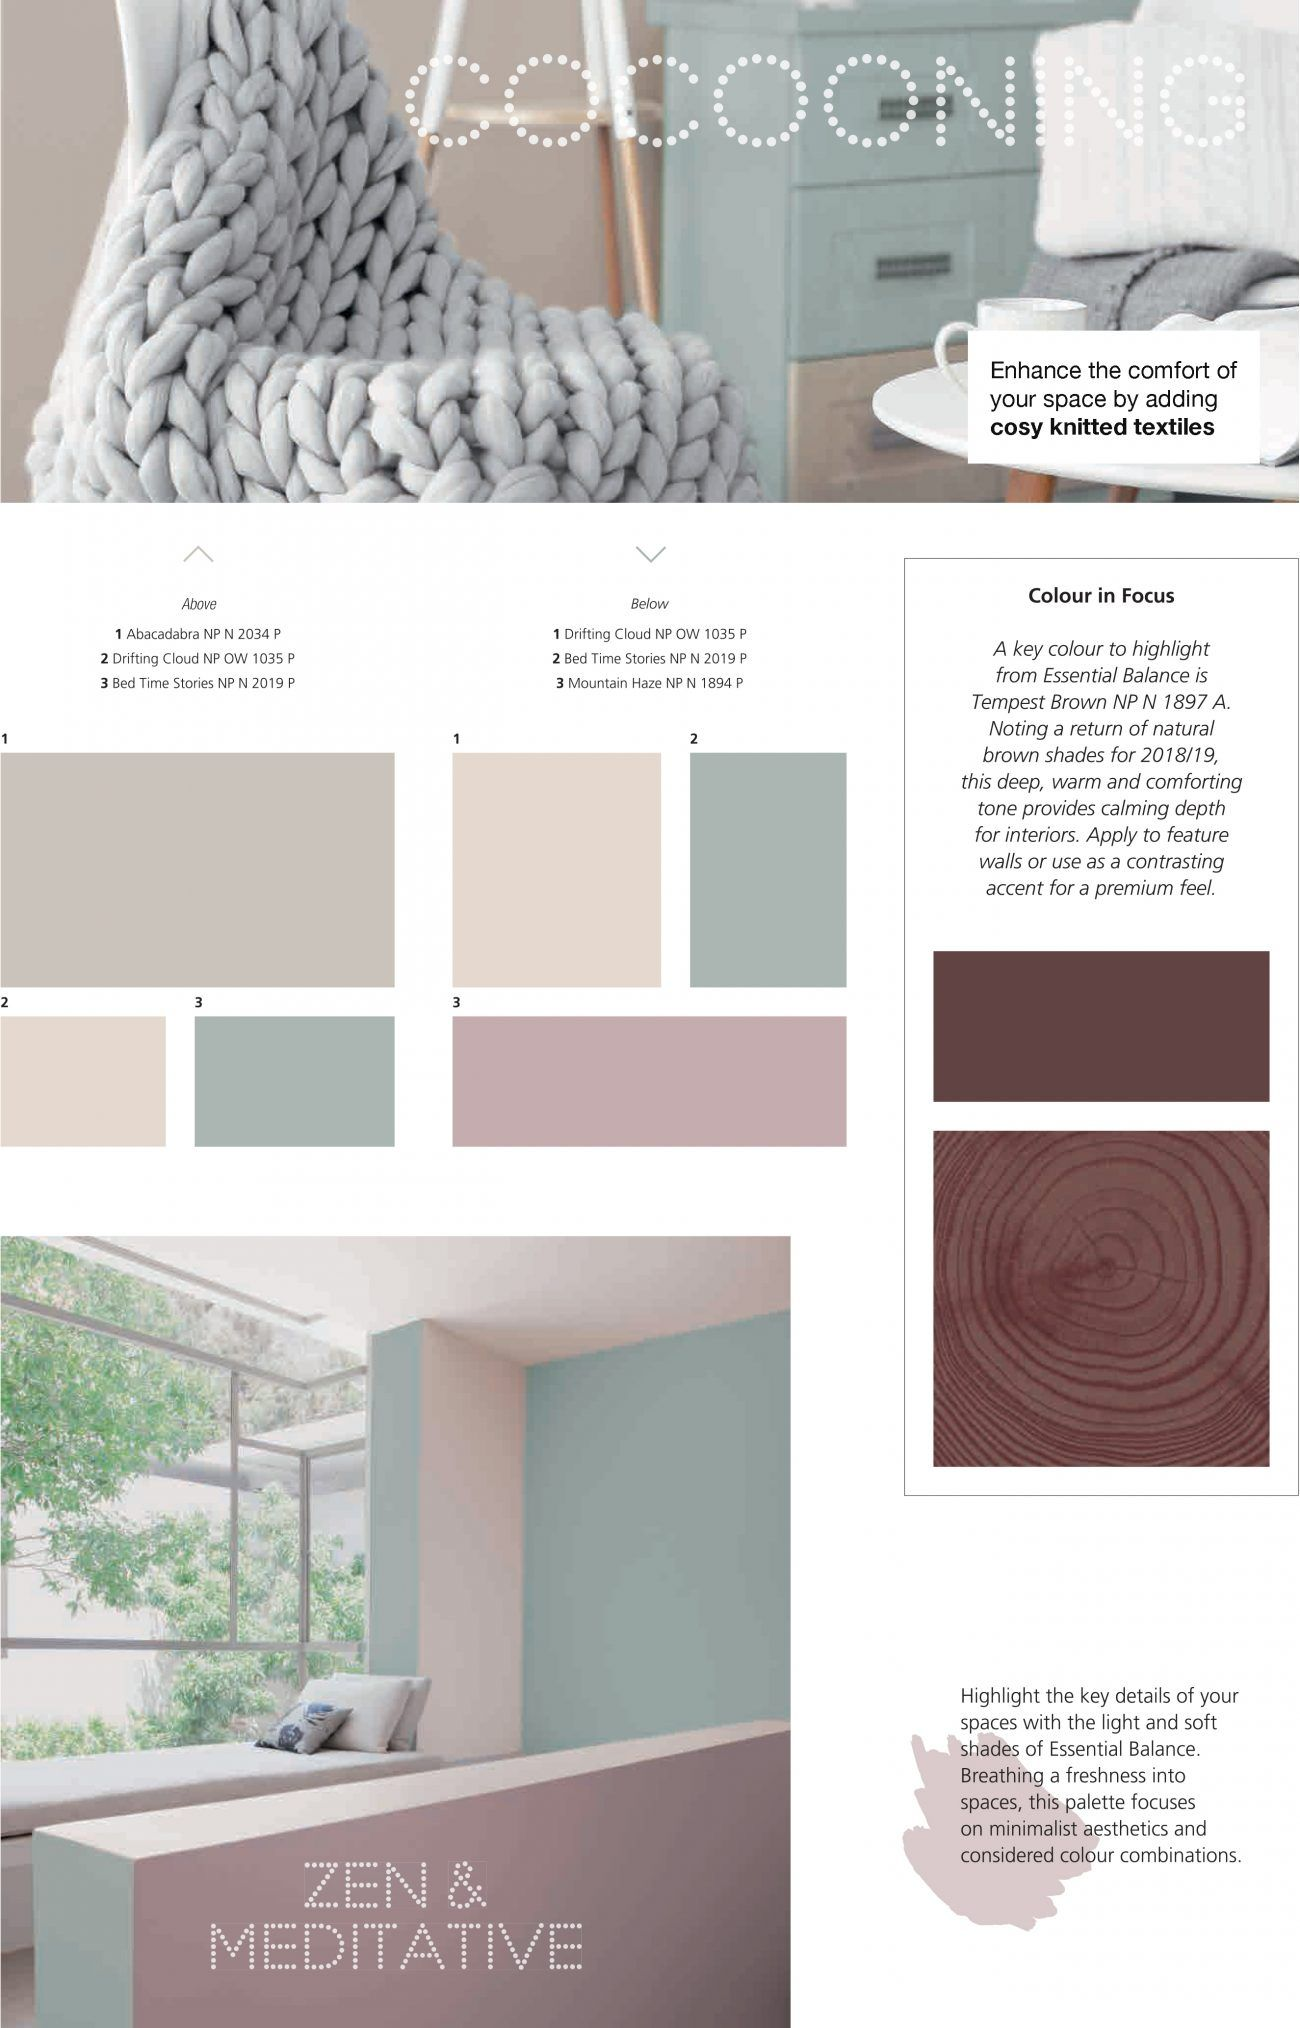 Essential Balance Nippon Paint Singapore Bedroom Colors Bedroom Wall Colors Nippon Paint